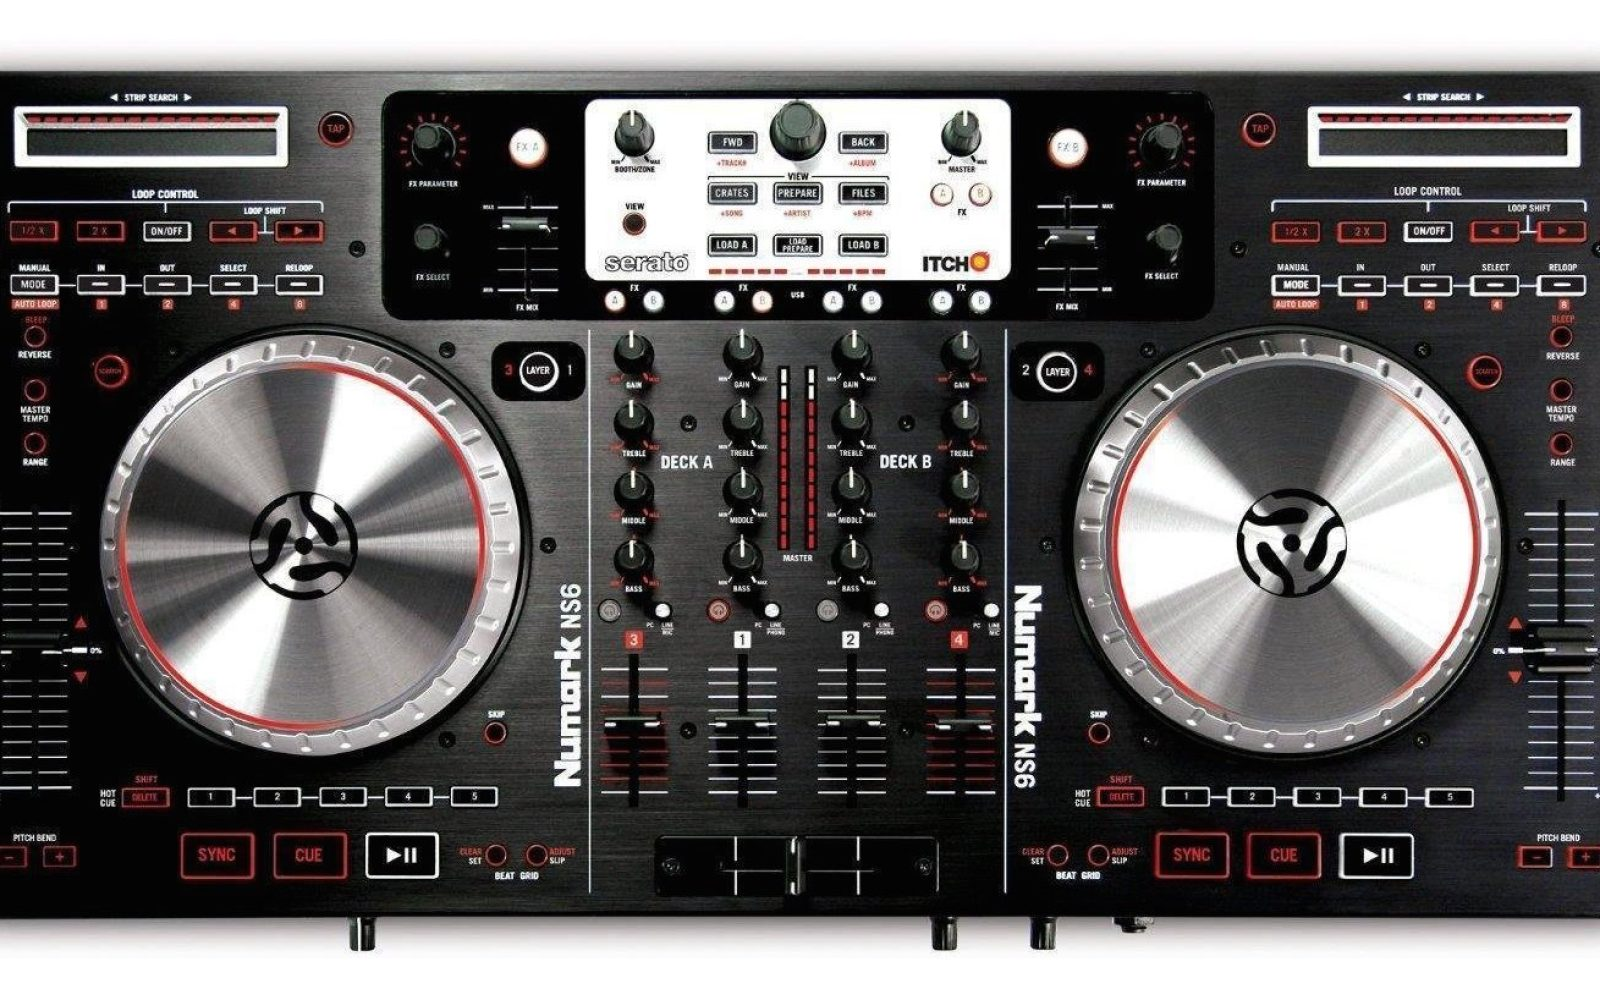 numark ns6 professional 4 channel dj controller for mac pc 400 shipped reg 700 more 9to5toys. Black Bedroom Furniture Sets. Home Design Ideas